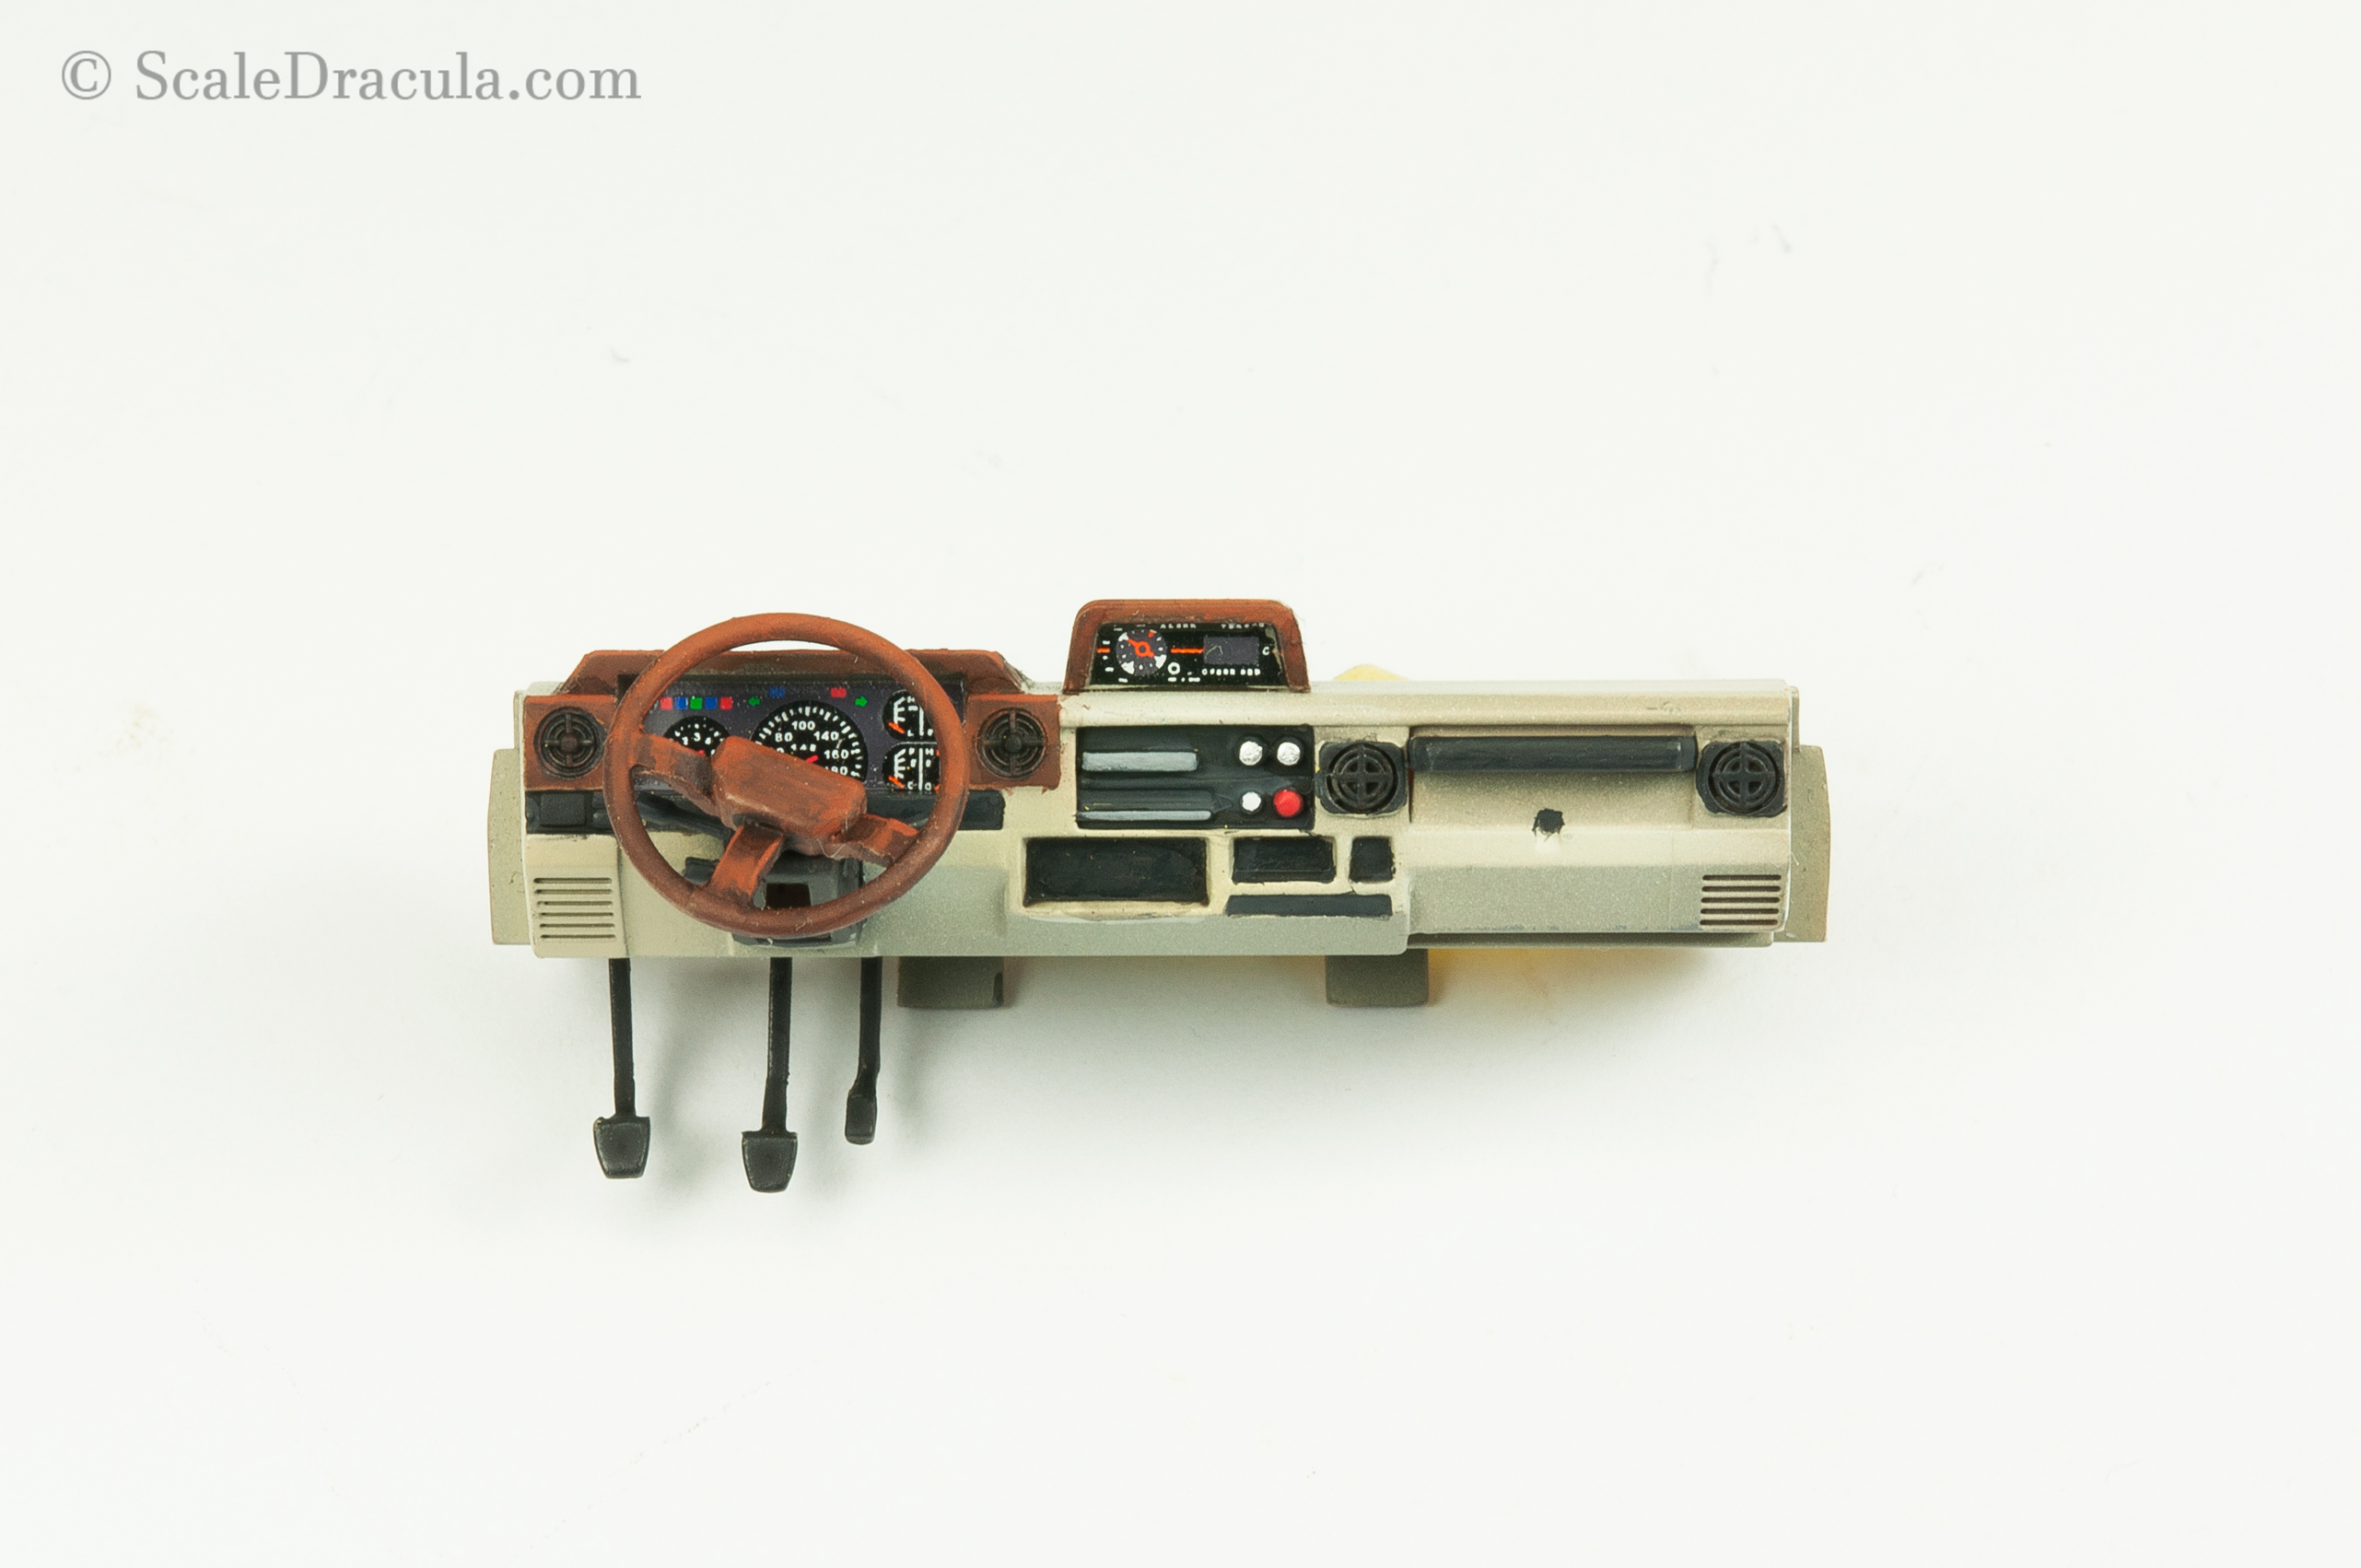 Dashboard painted with acrylics, Toyota technical by Meng